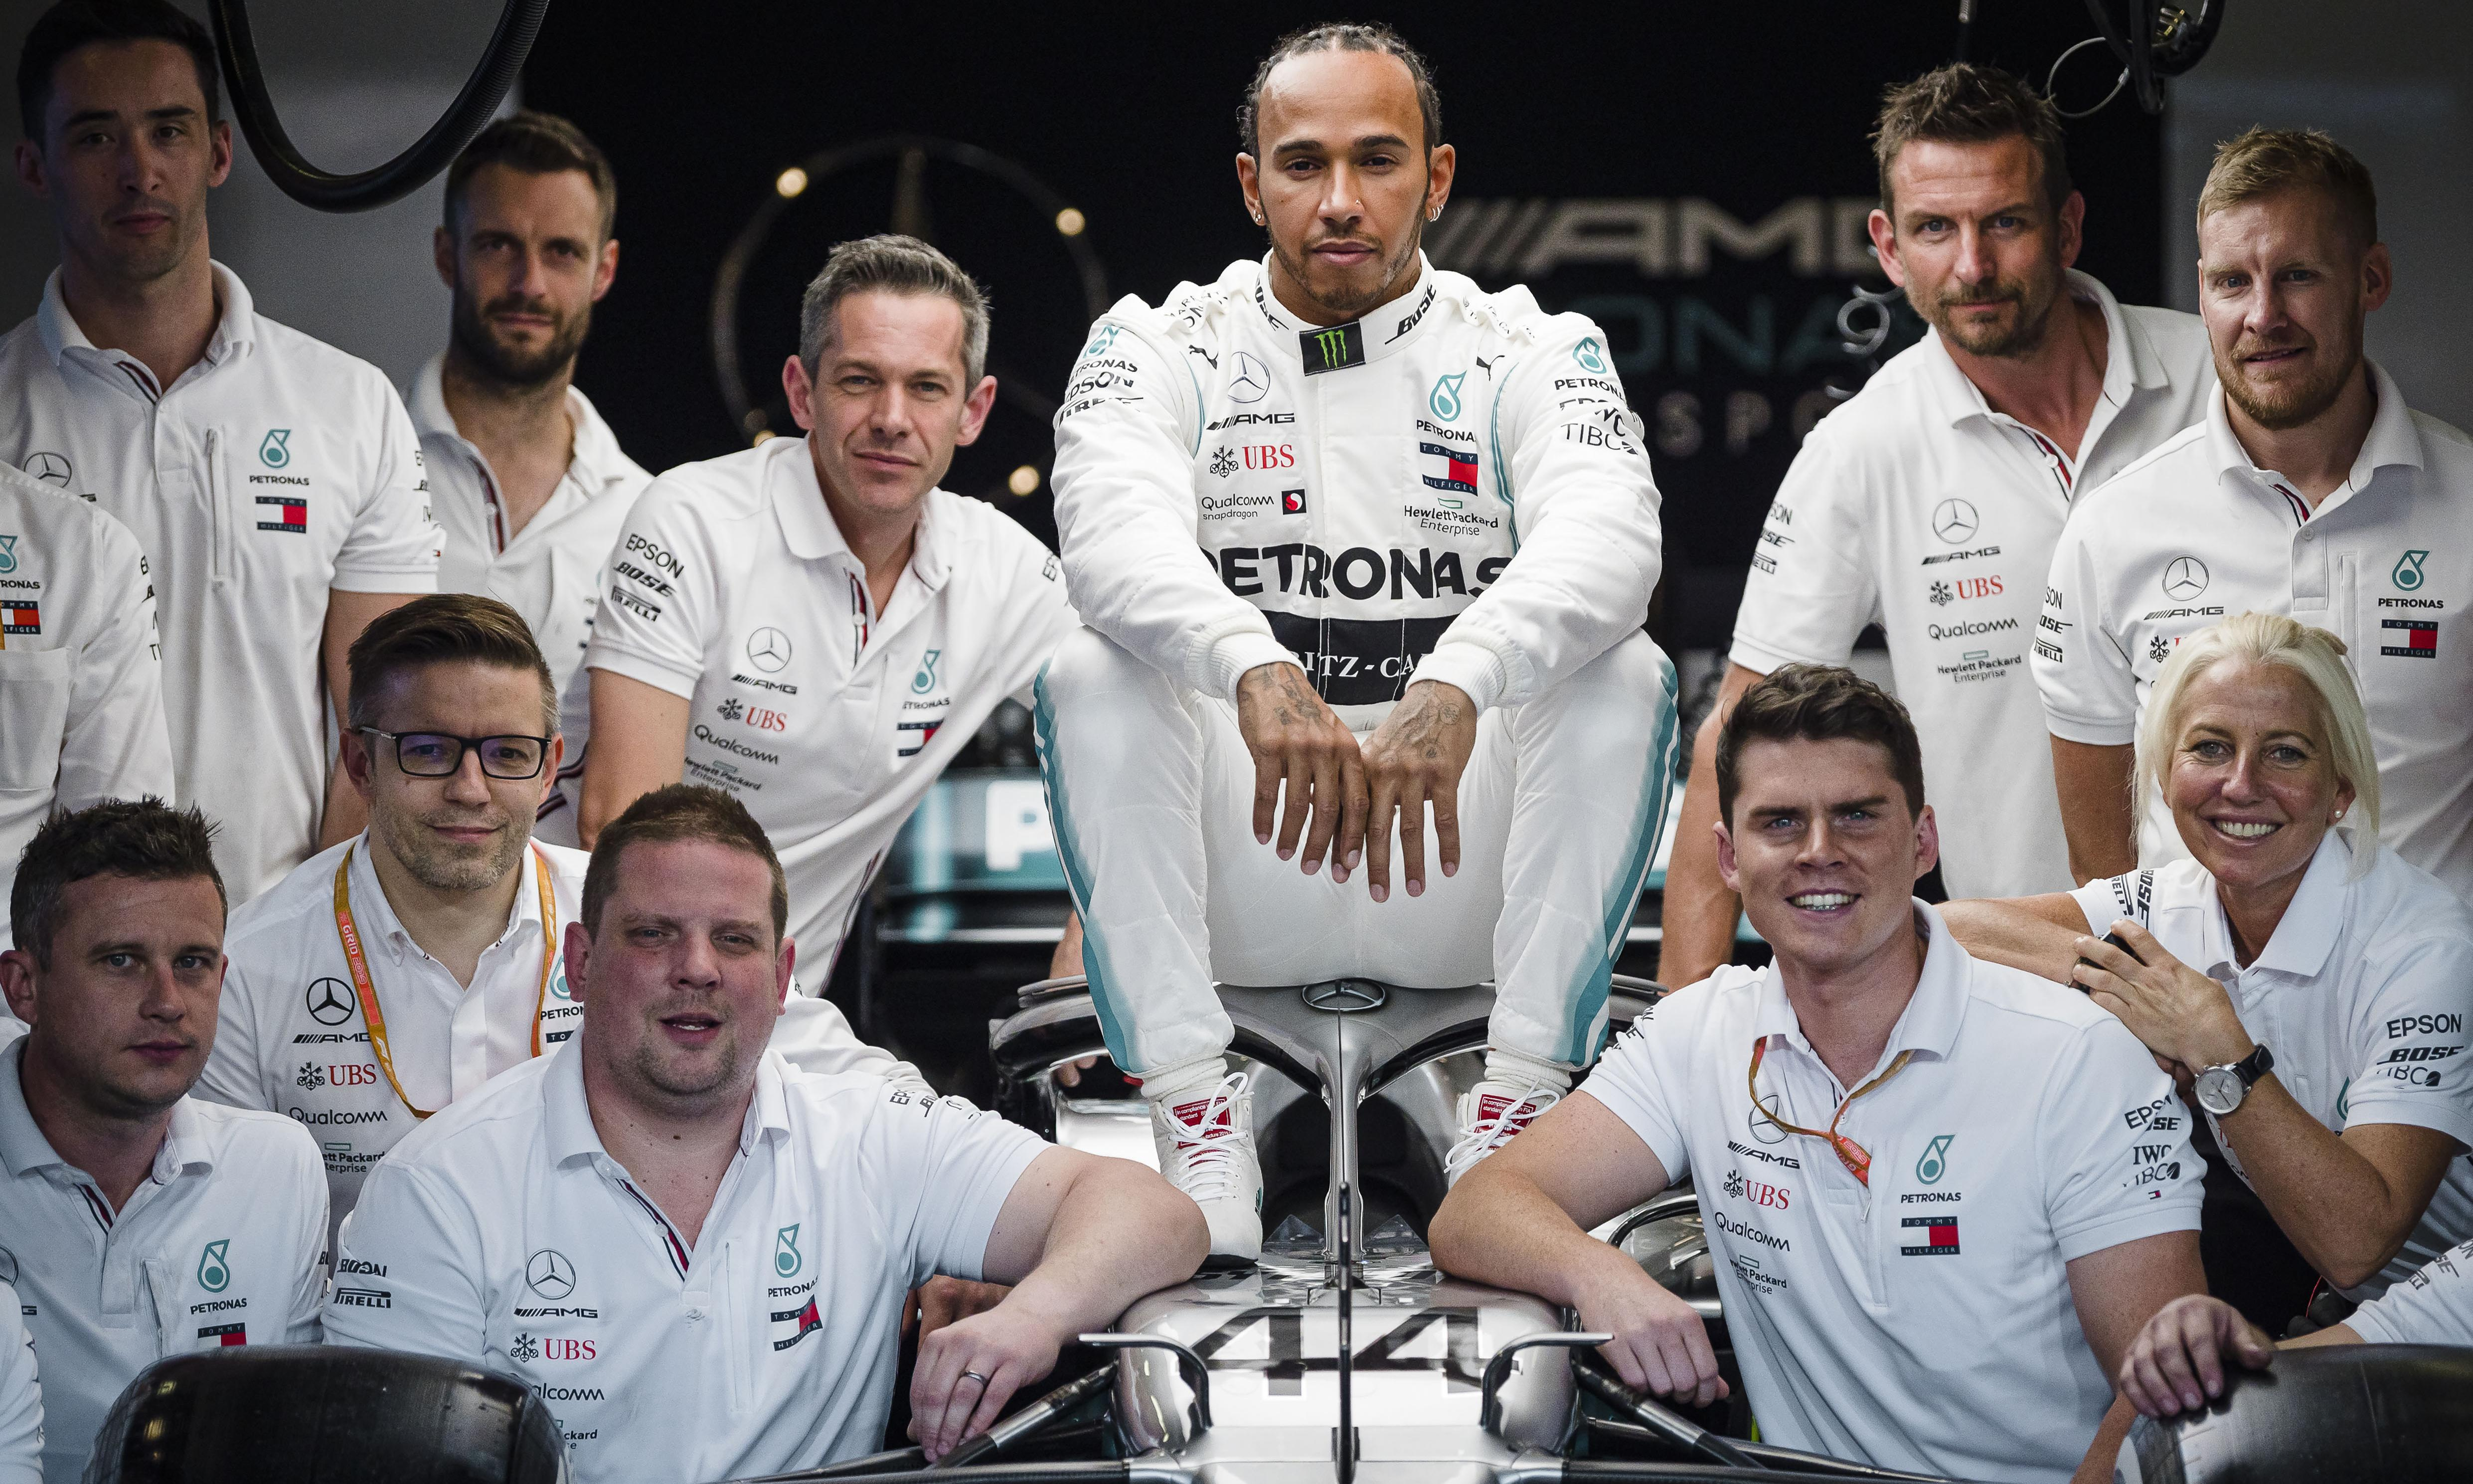 Lewis Hamilton is not only a peerless champion, he is the face of F1